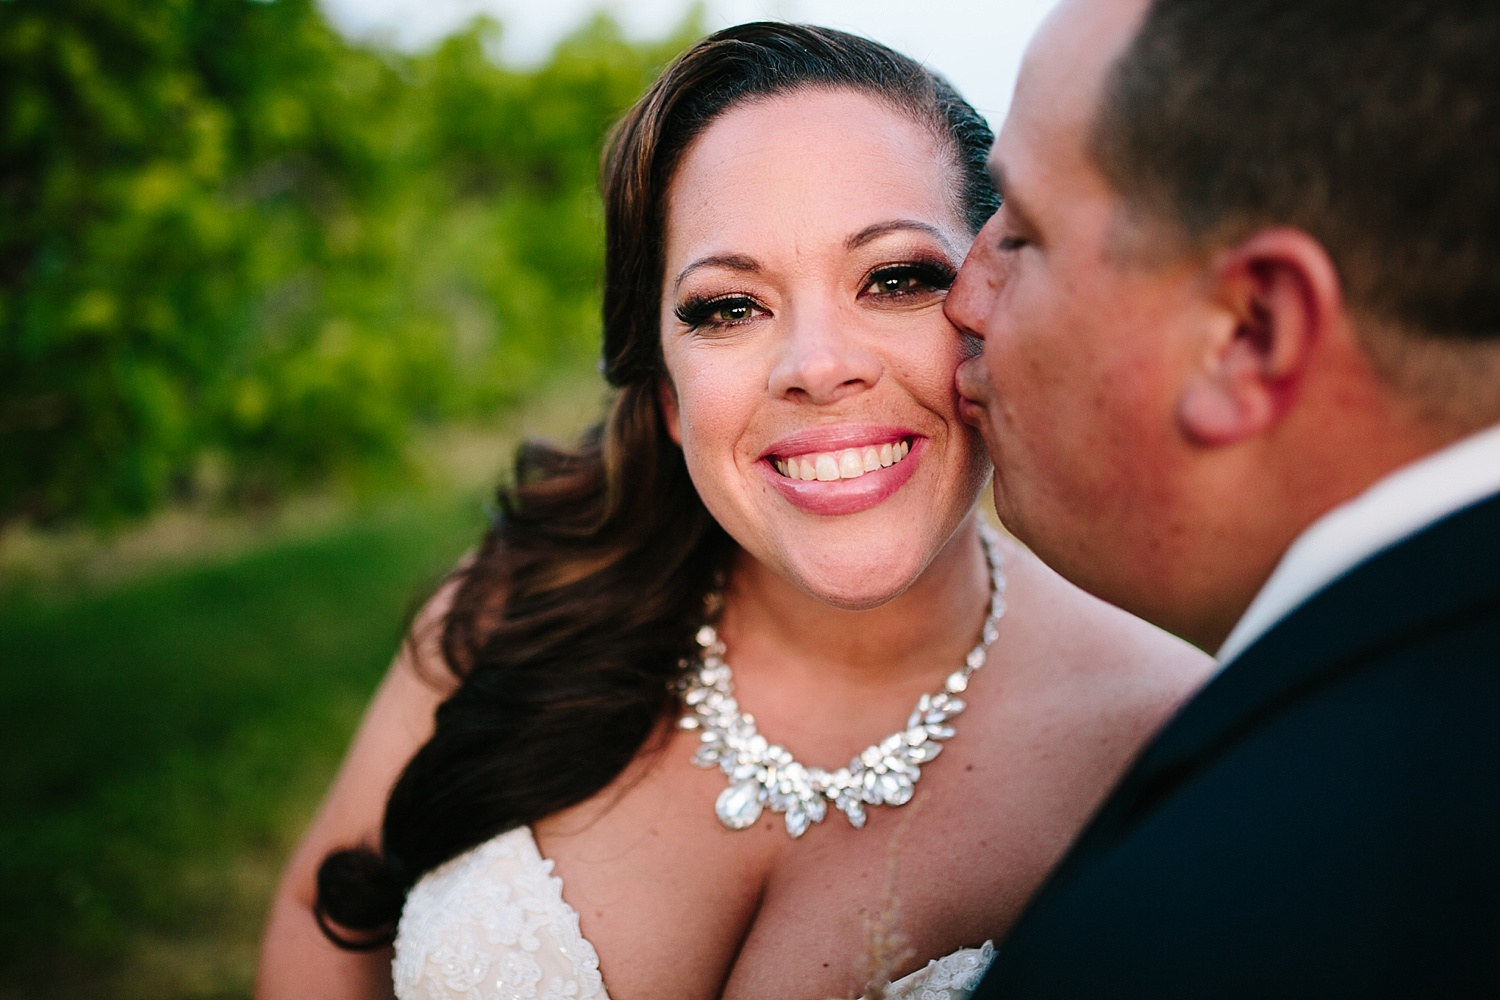 kellishawn_rosebankwinery_newtown_buckscounty_summer_wedding_image041.jpg